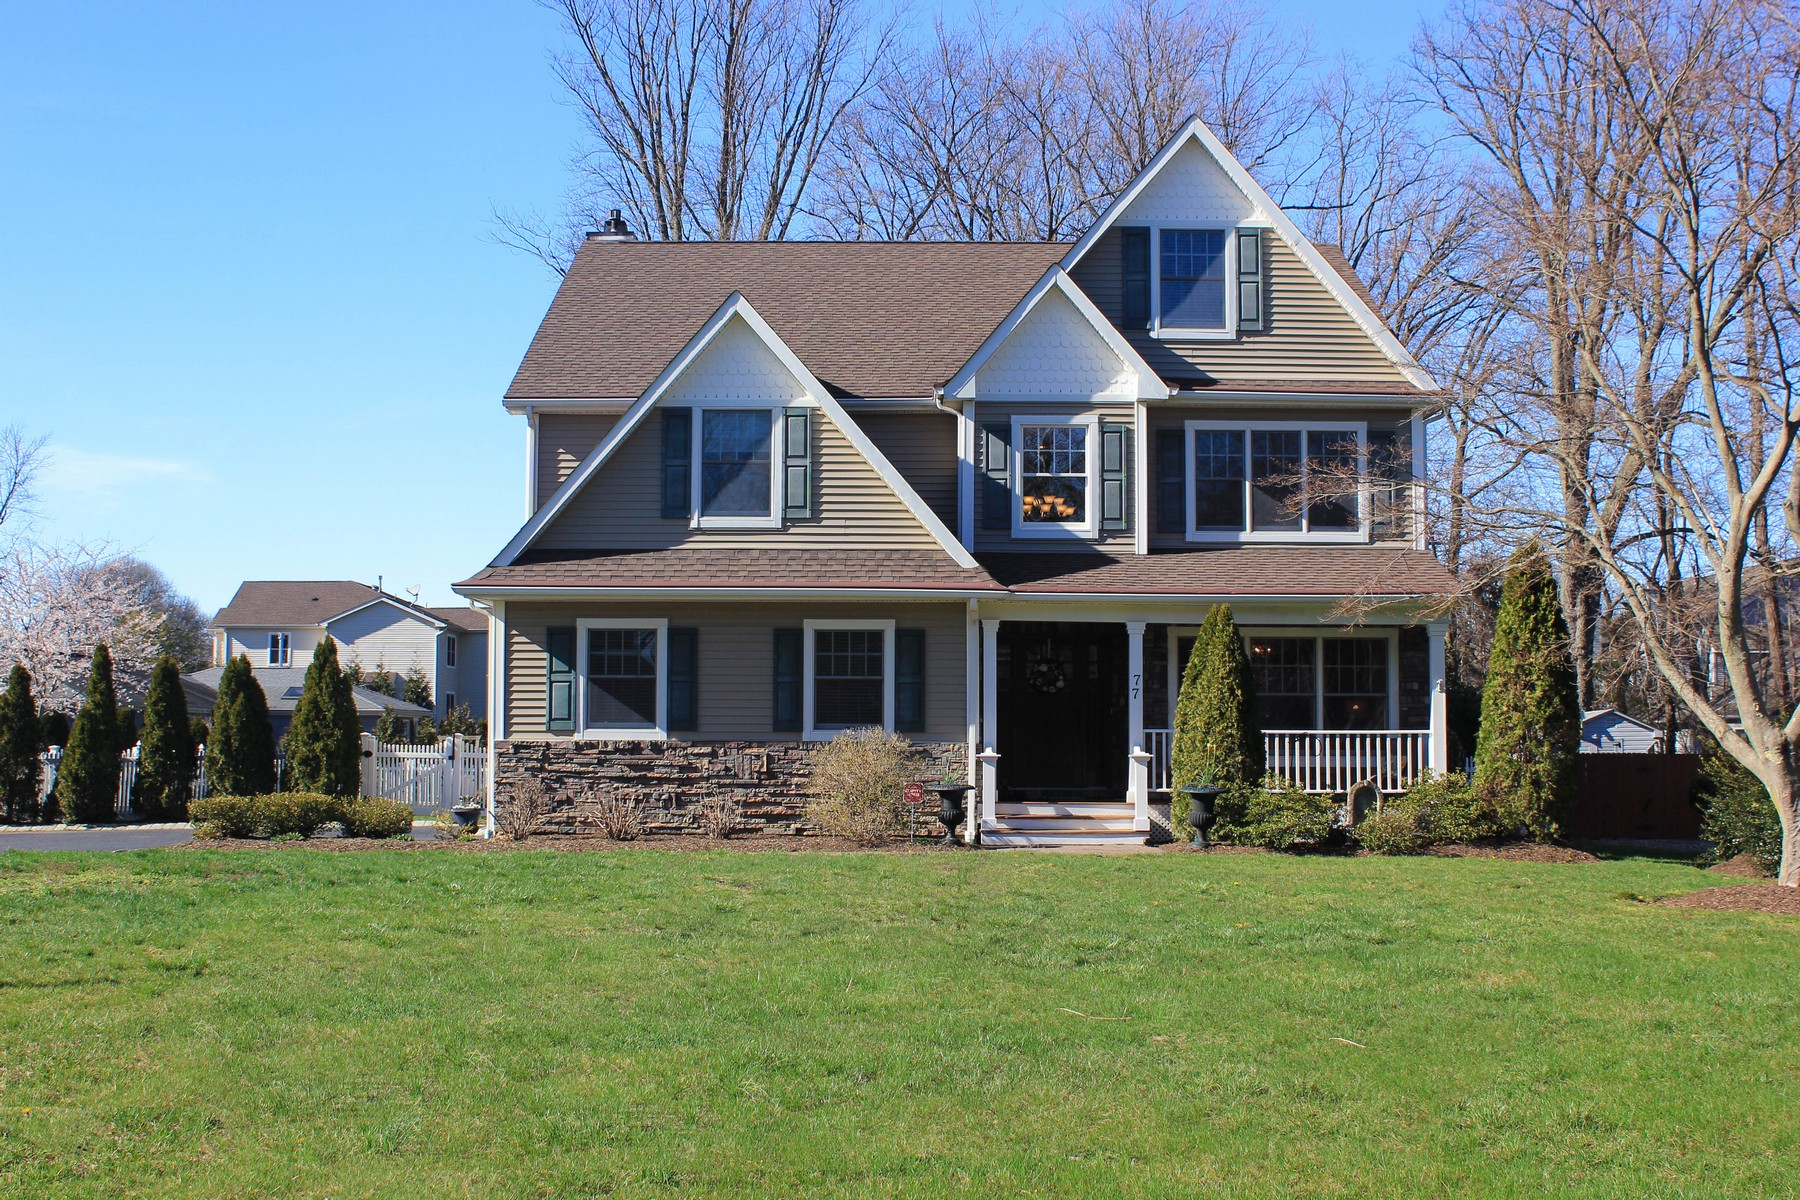 Single Family Home for Sale at 77 Sycamore Ave. Little Silver, New Jersey 07739 United States